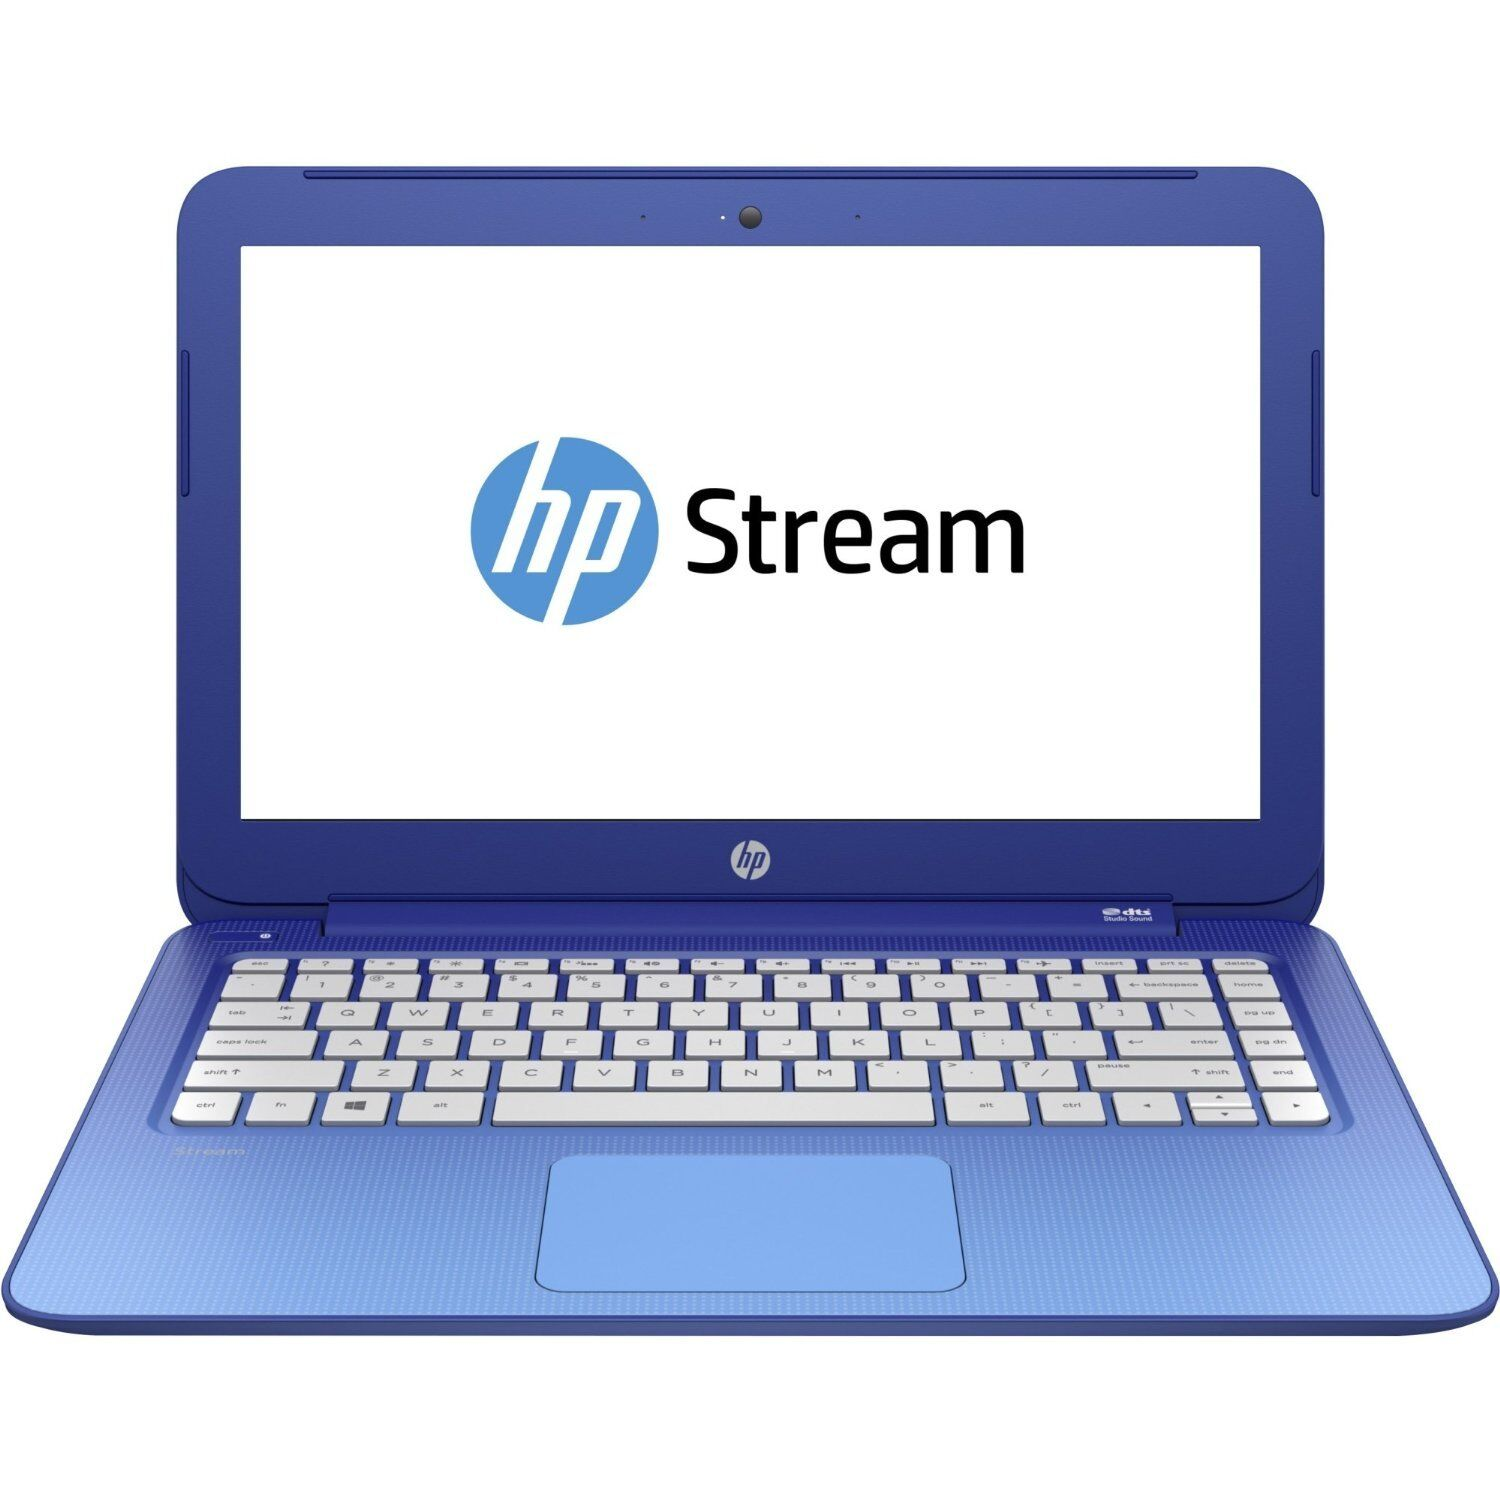 "New HP Stream 13-c077nr 13.3"" Laptop Intel 2GB 32GB eMMC Webcam Office 365 Blue"